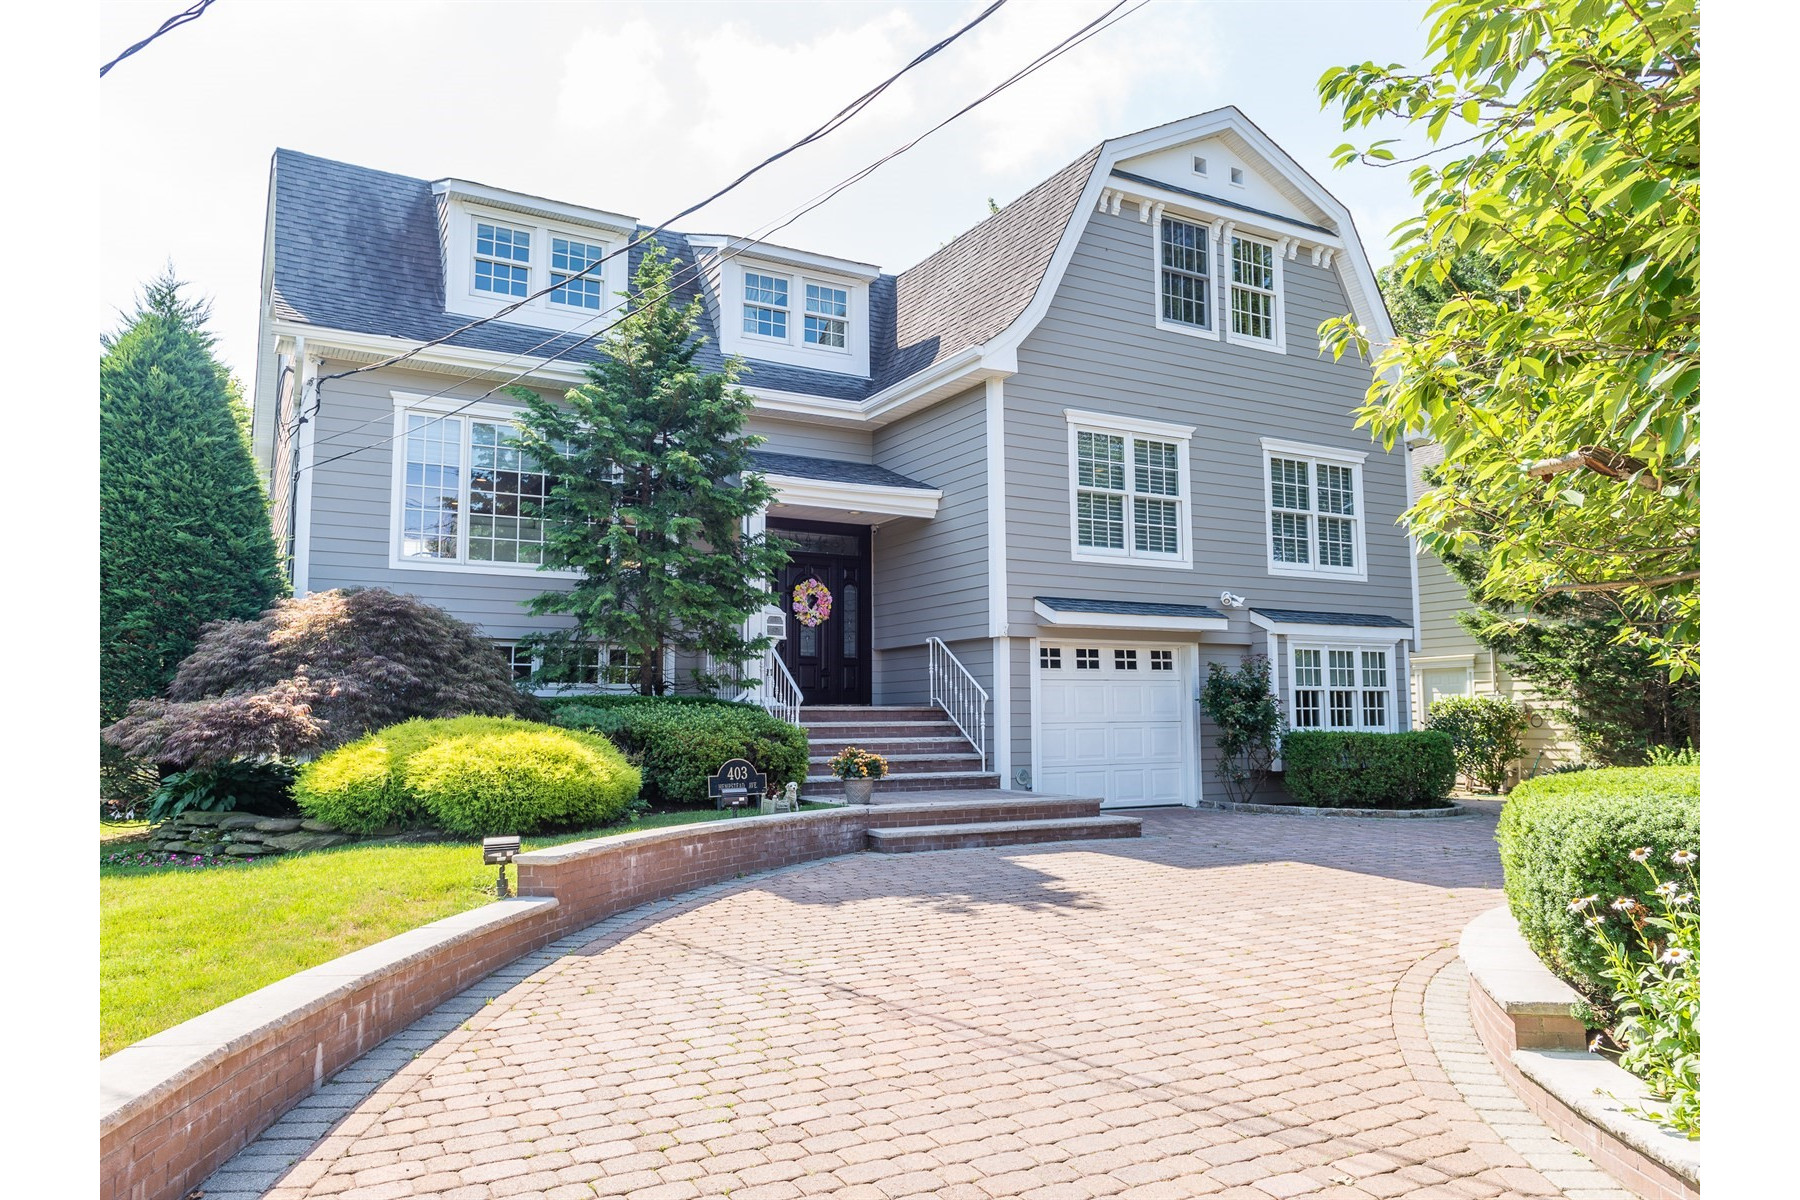 Single Family Home for Sale at 403 Hempstead Ave 403 Hempstead Ave Rockville Centre, New York 11570 United States